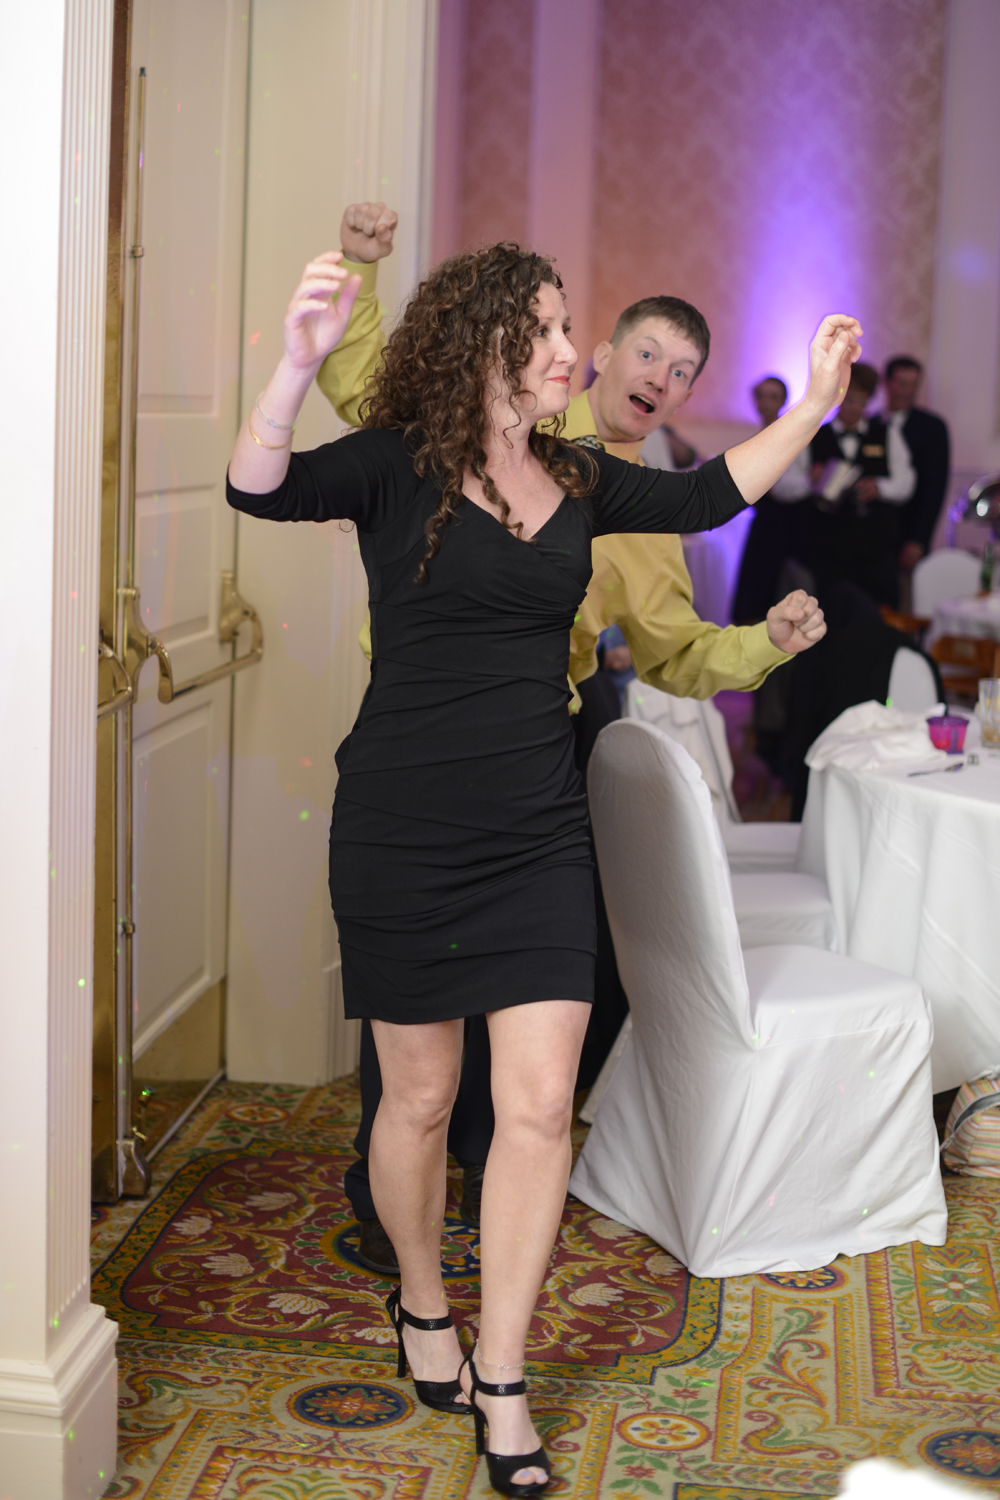 Dancing wedding guests at the reception |Maria Grace Photography